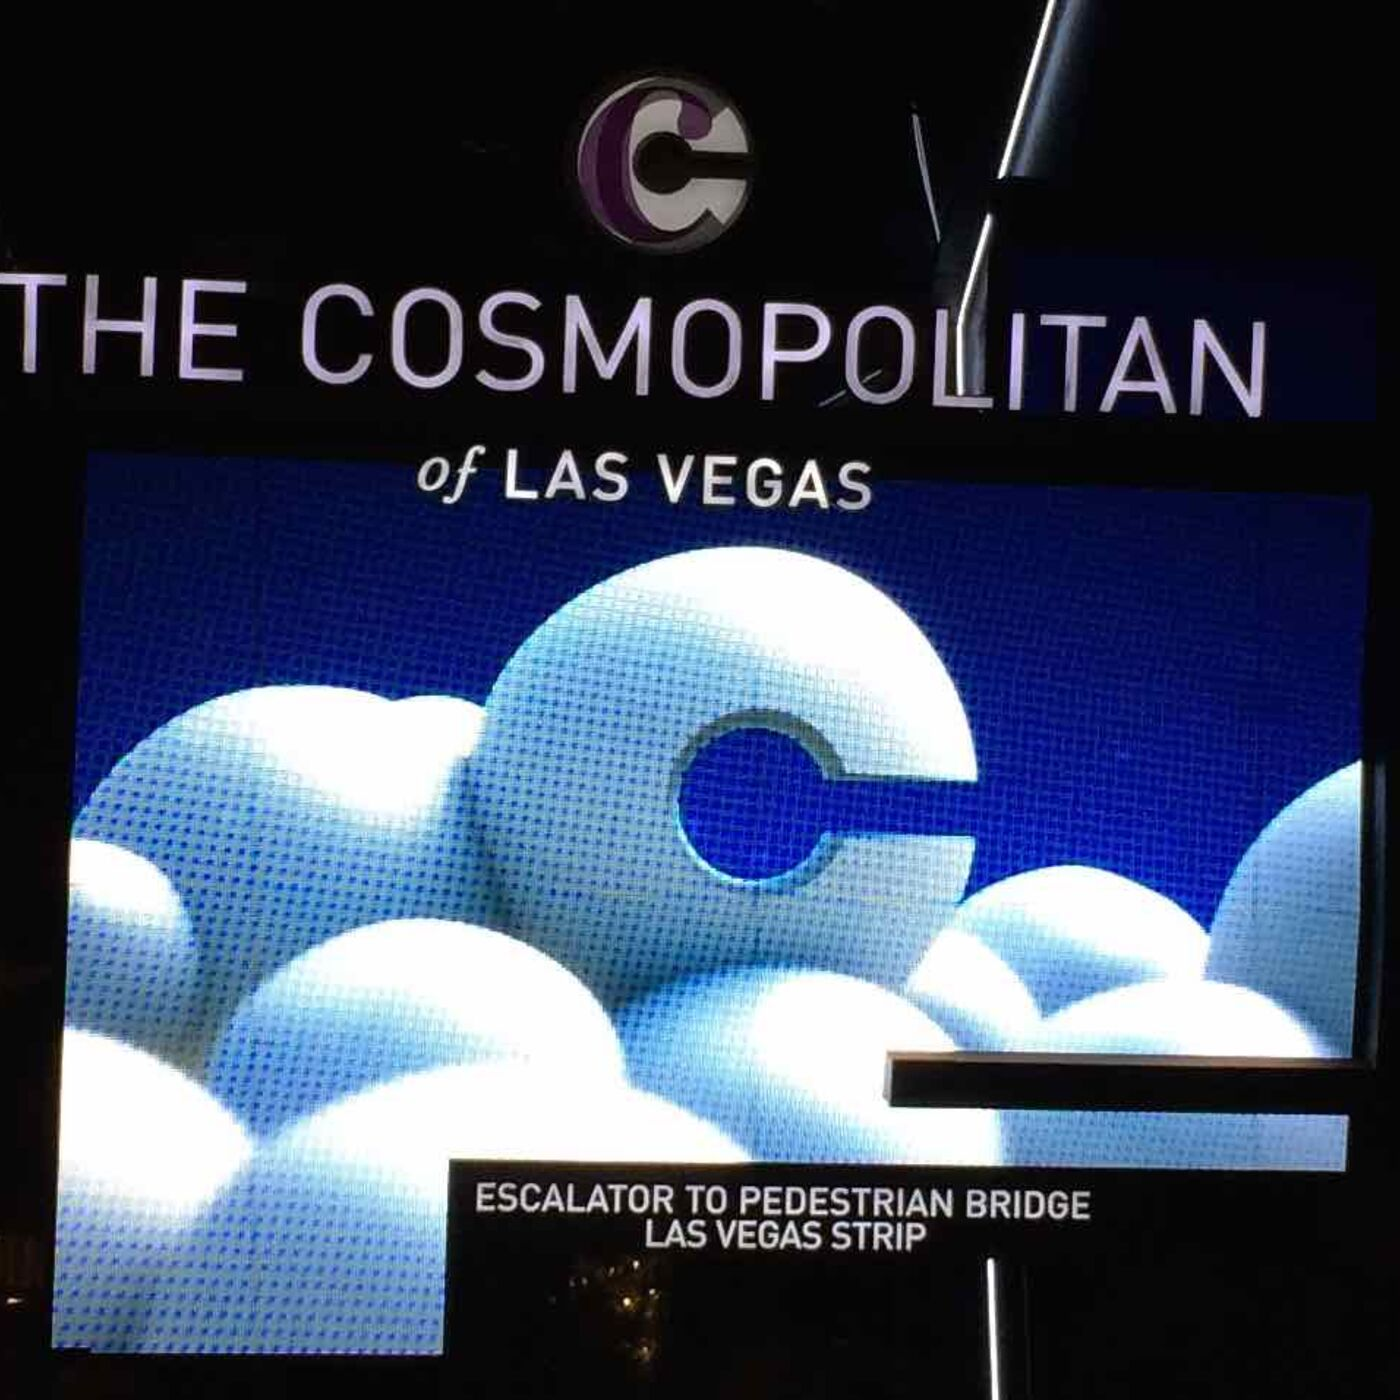 Episode 96 Nine Minutes on THE COSMOPOLITAN OF LAS VEGAS